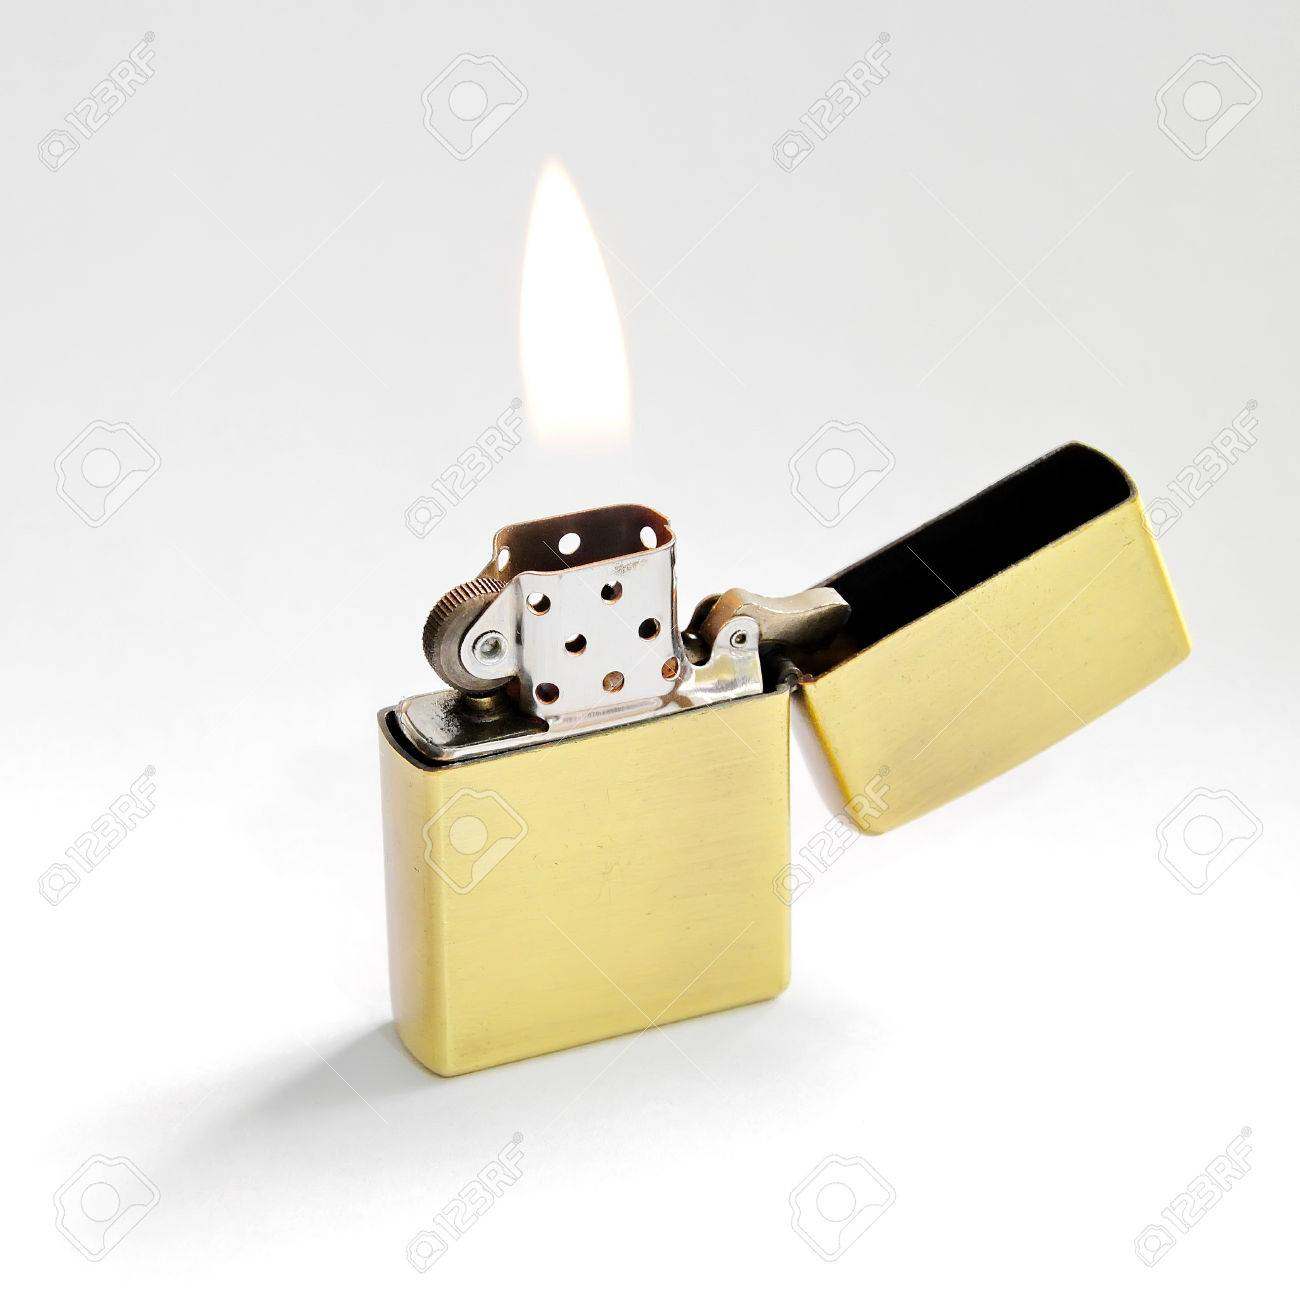 Closed Up Zippo Lighter With Flame Isolated On White Background Stock Photo